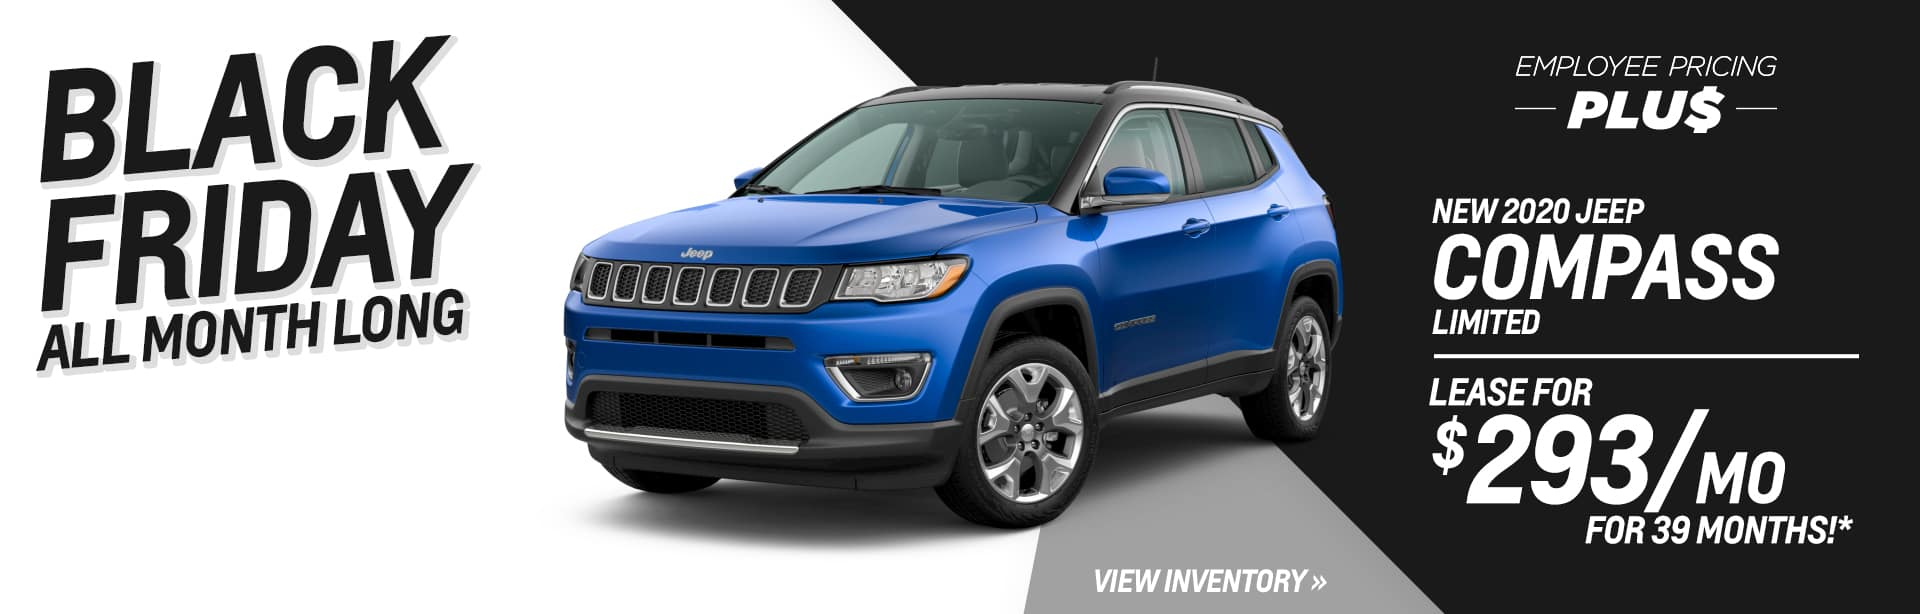 Lease a New Jeep Compass for $293 a month in Auburn, Indiana